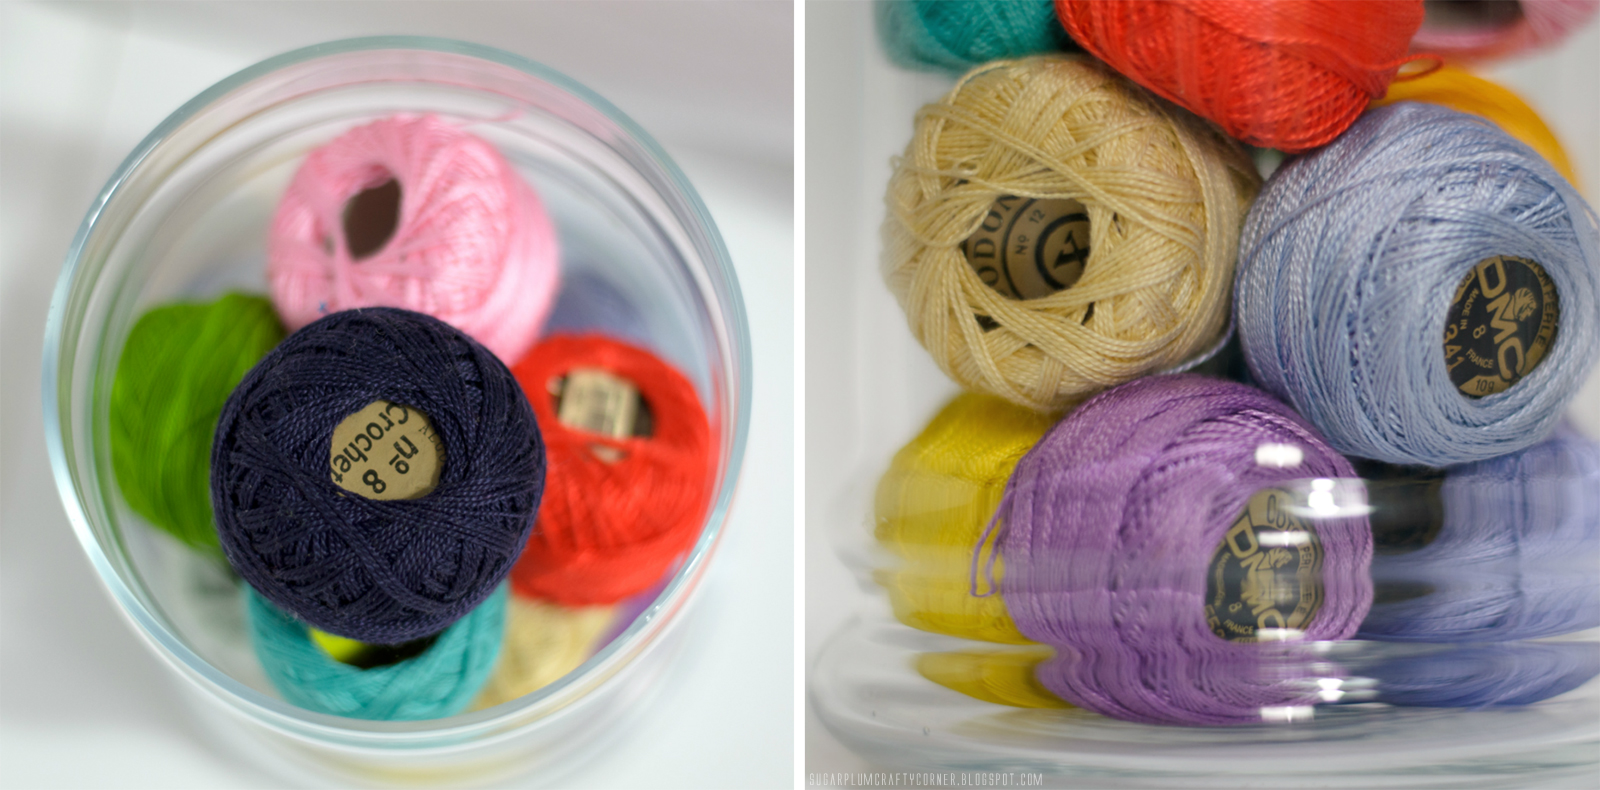 Embroidery Thread Balls Jar Closeup